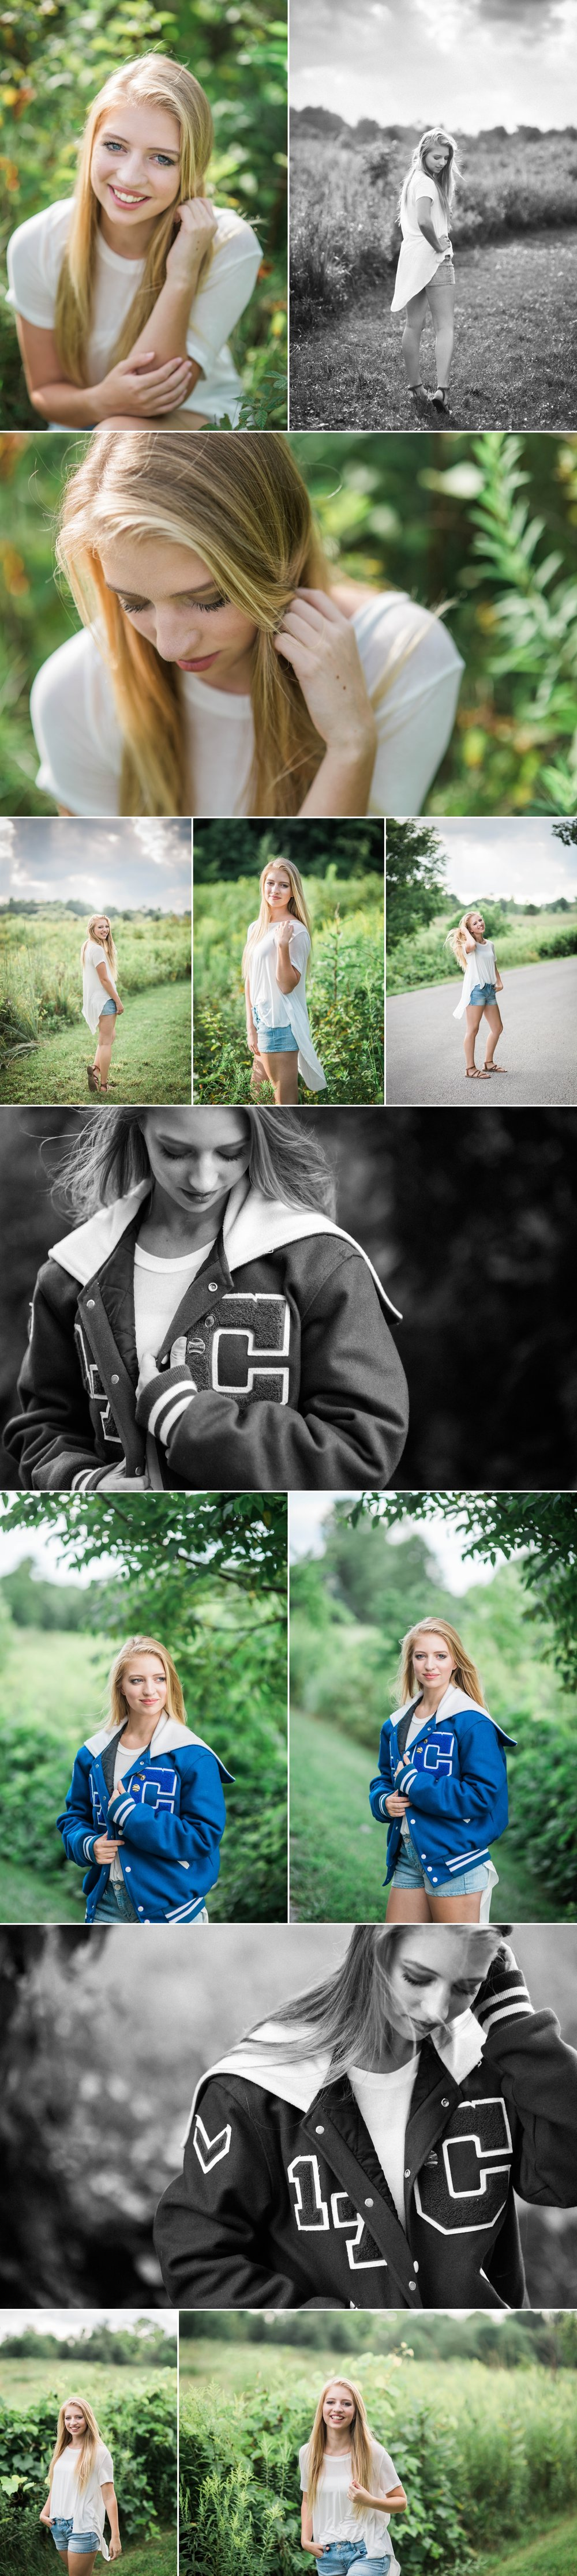 senior-senior portrait-river portrait- fort wayne indiana - 1